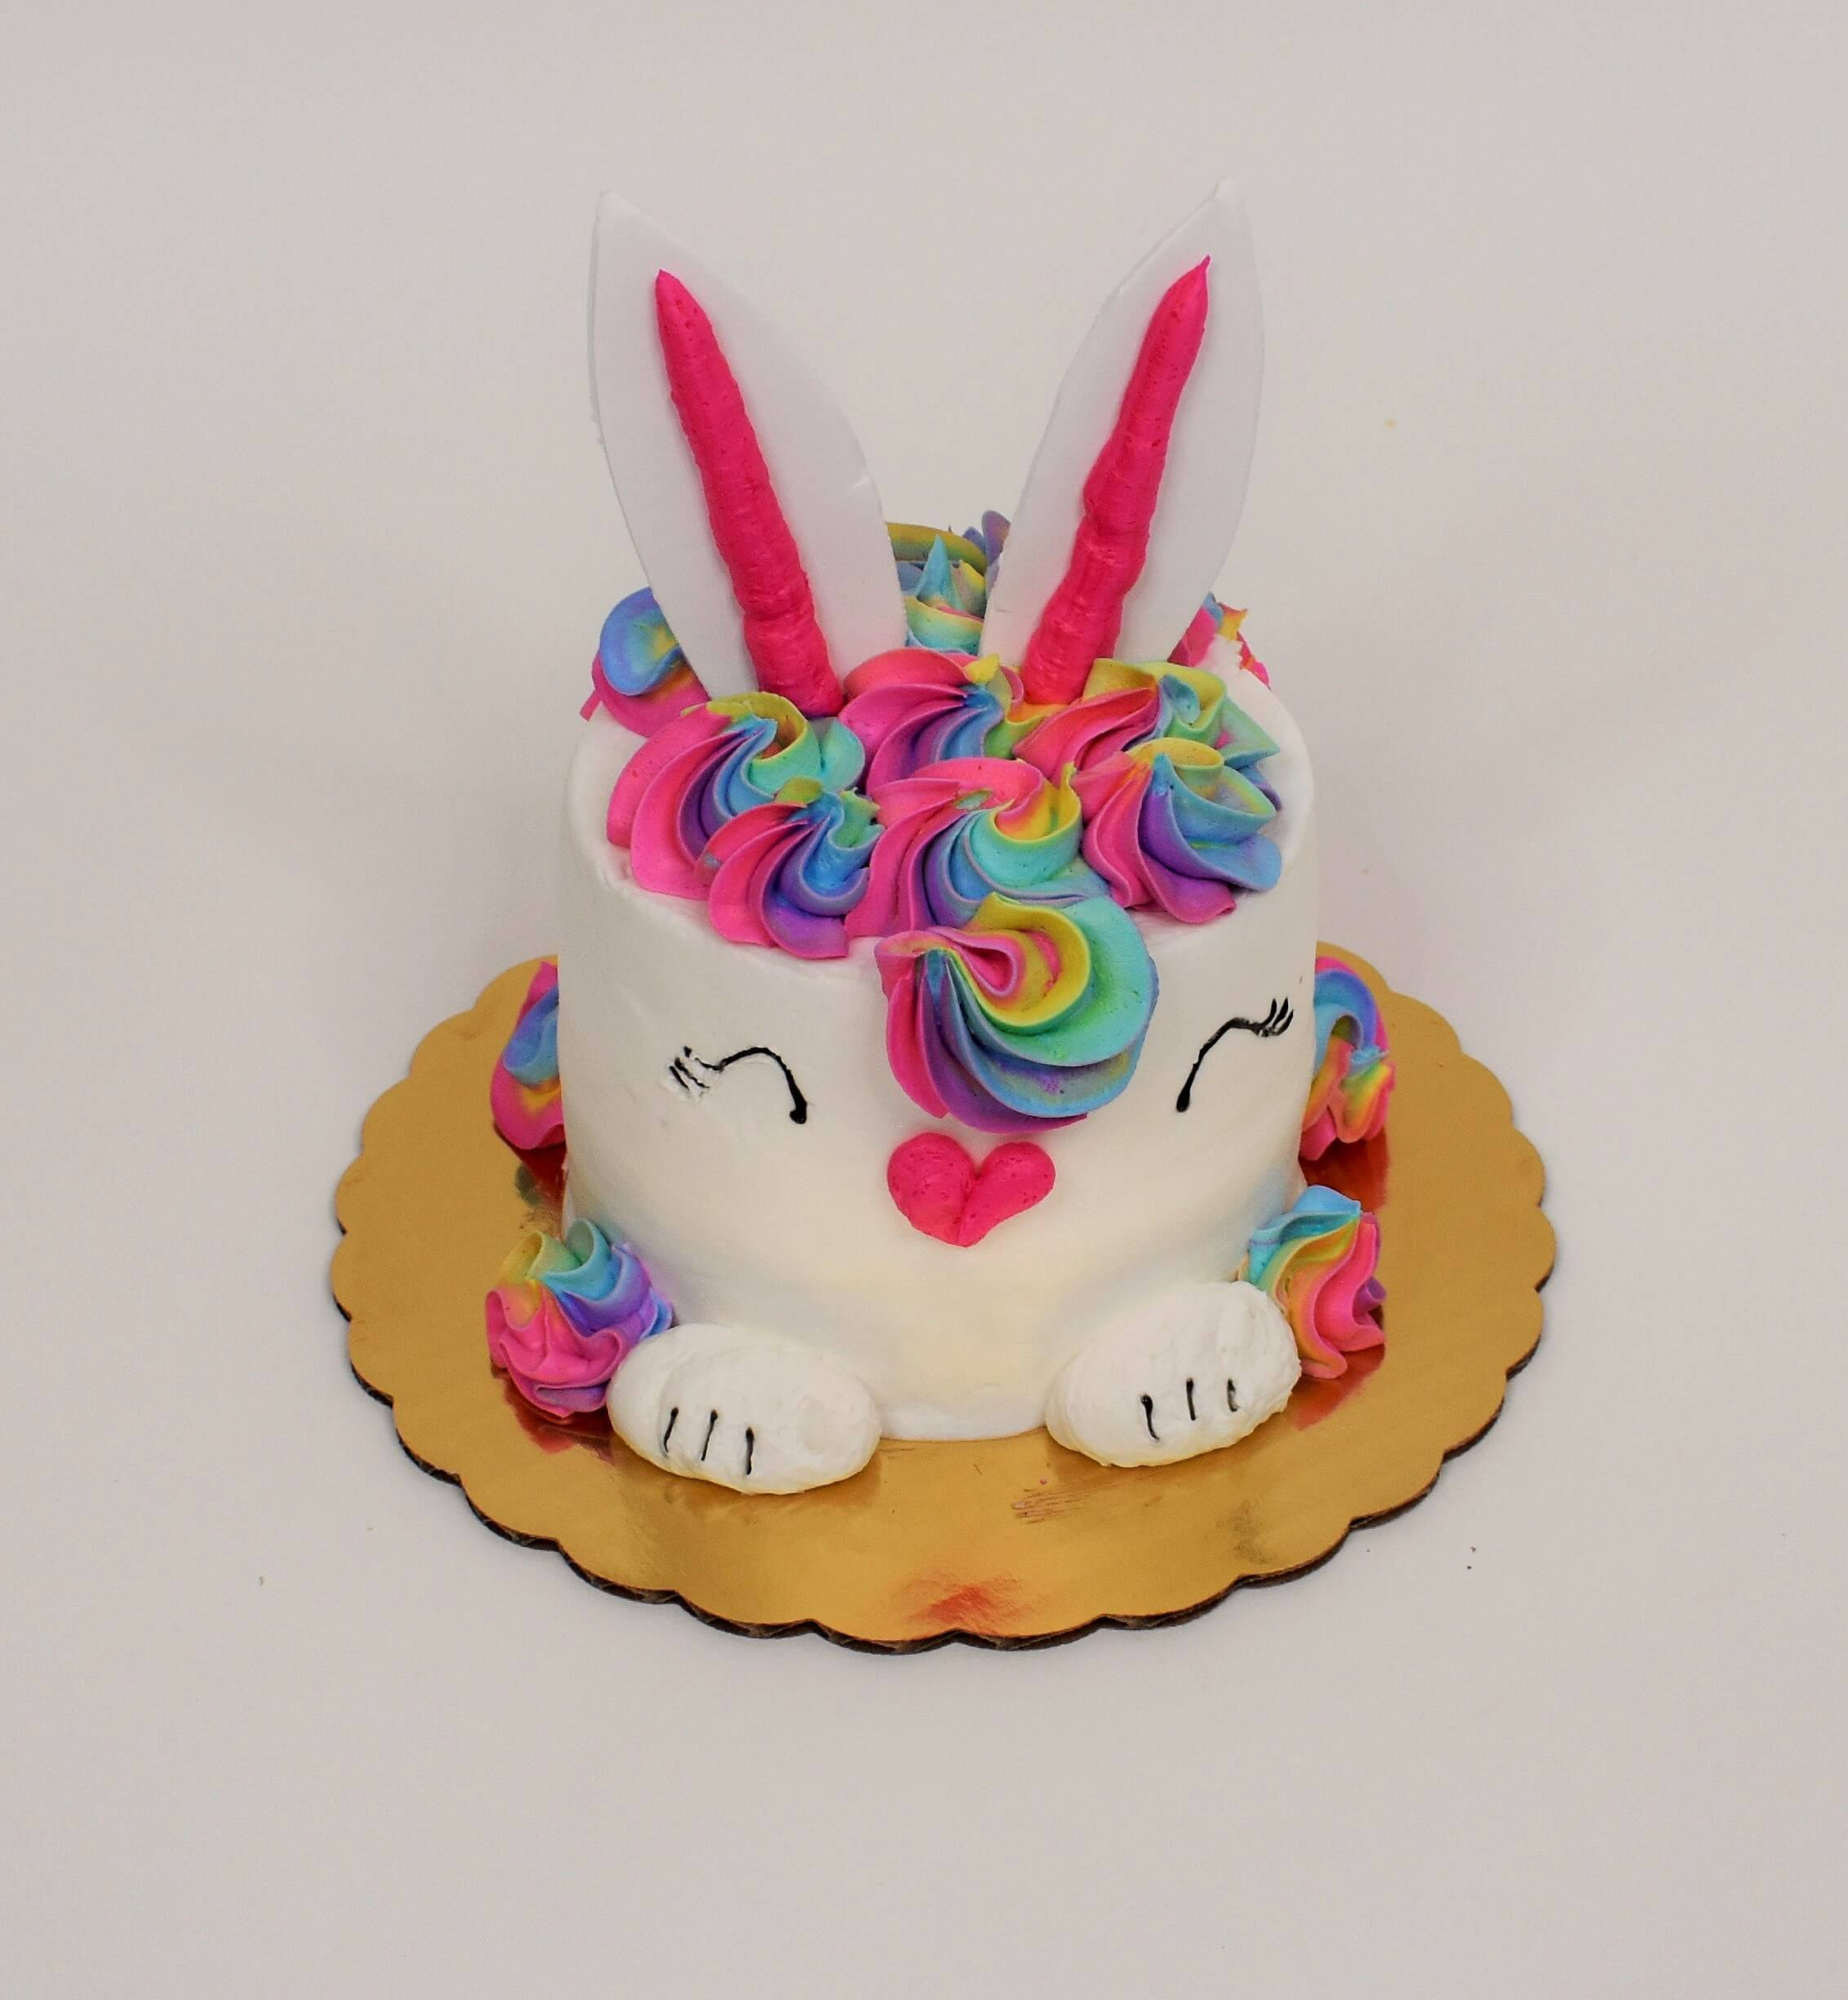 McArthur's Bakery Party Cake of a colorful Easter Bunny